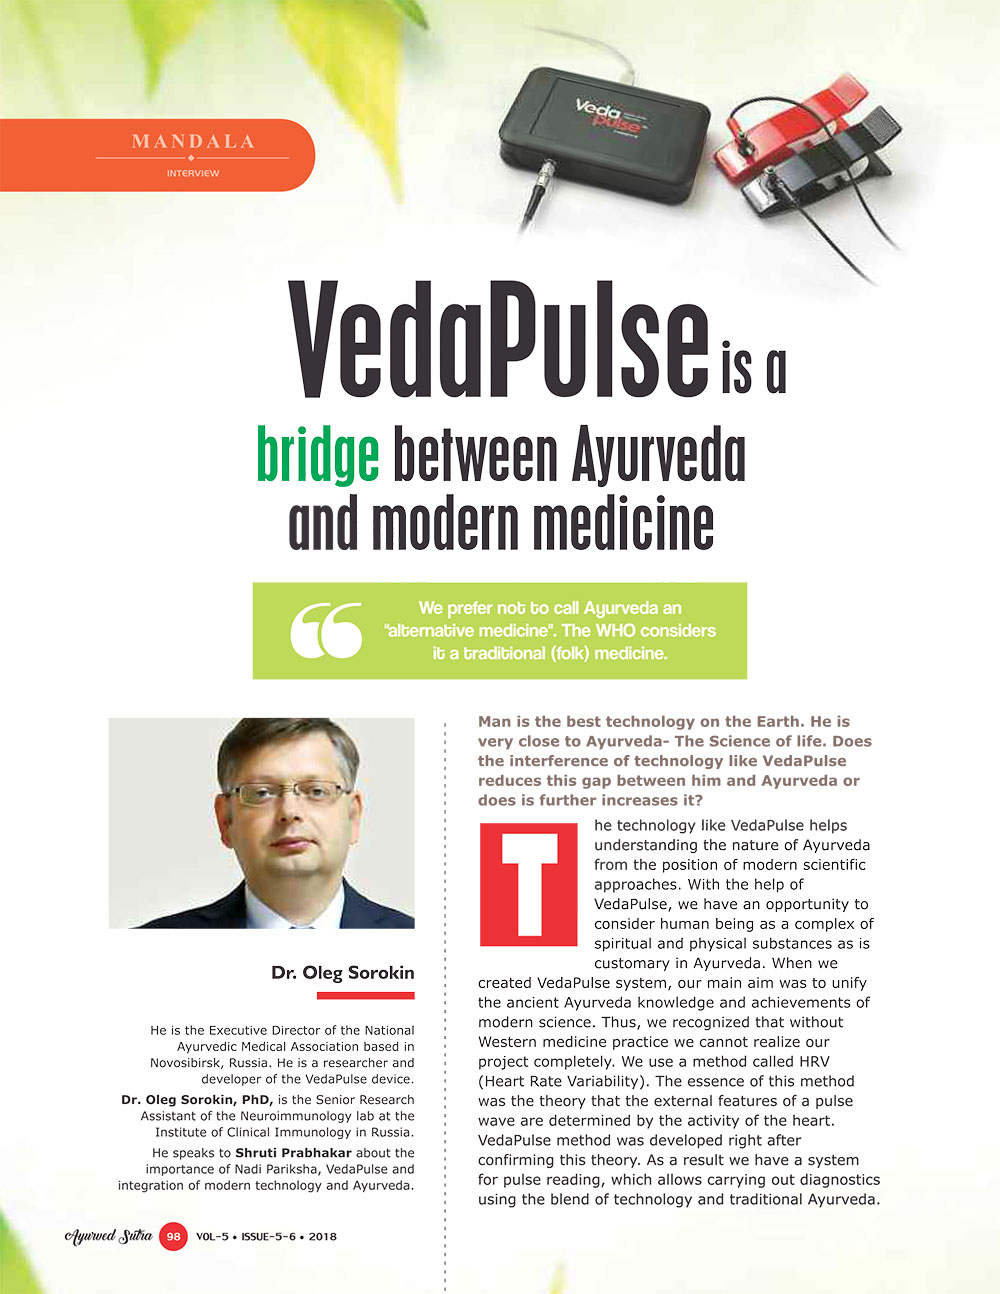 Ayurvedsutra Vol 05 issue 05 06 100 - VedaPulse is a bridge between Ayurveda and modern medicine